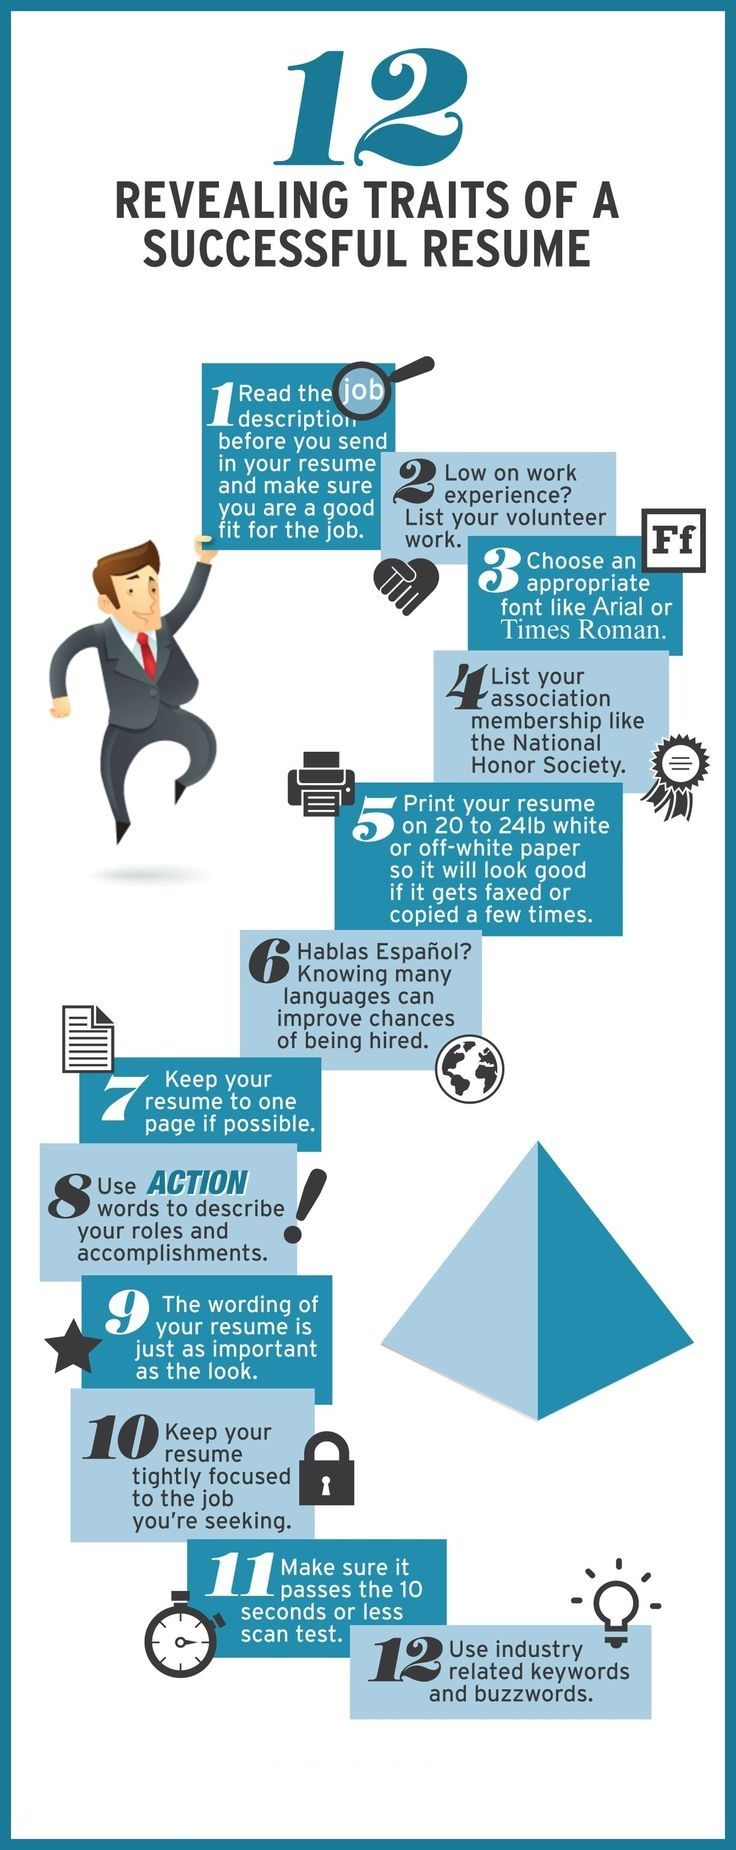 Traits of a successful resume #resumewriting #resumes #Success ...